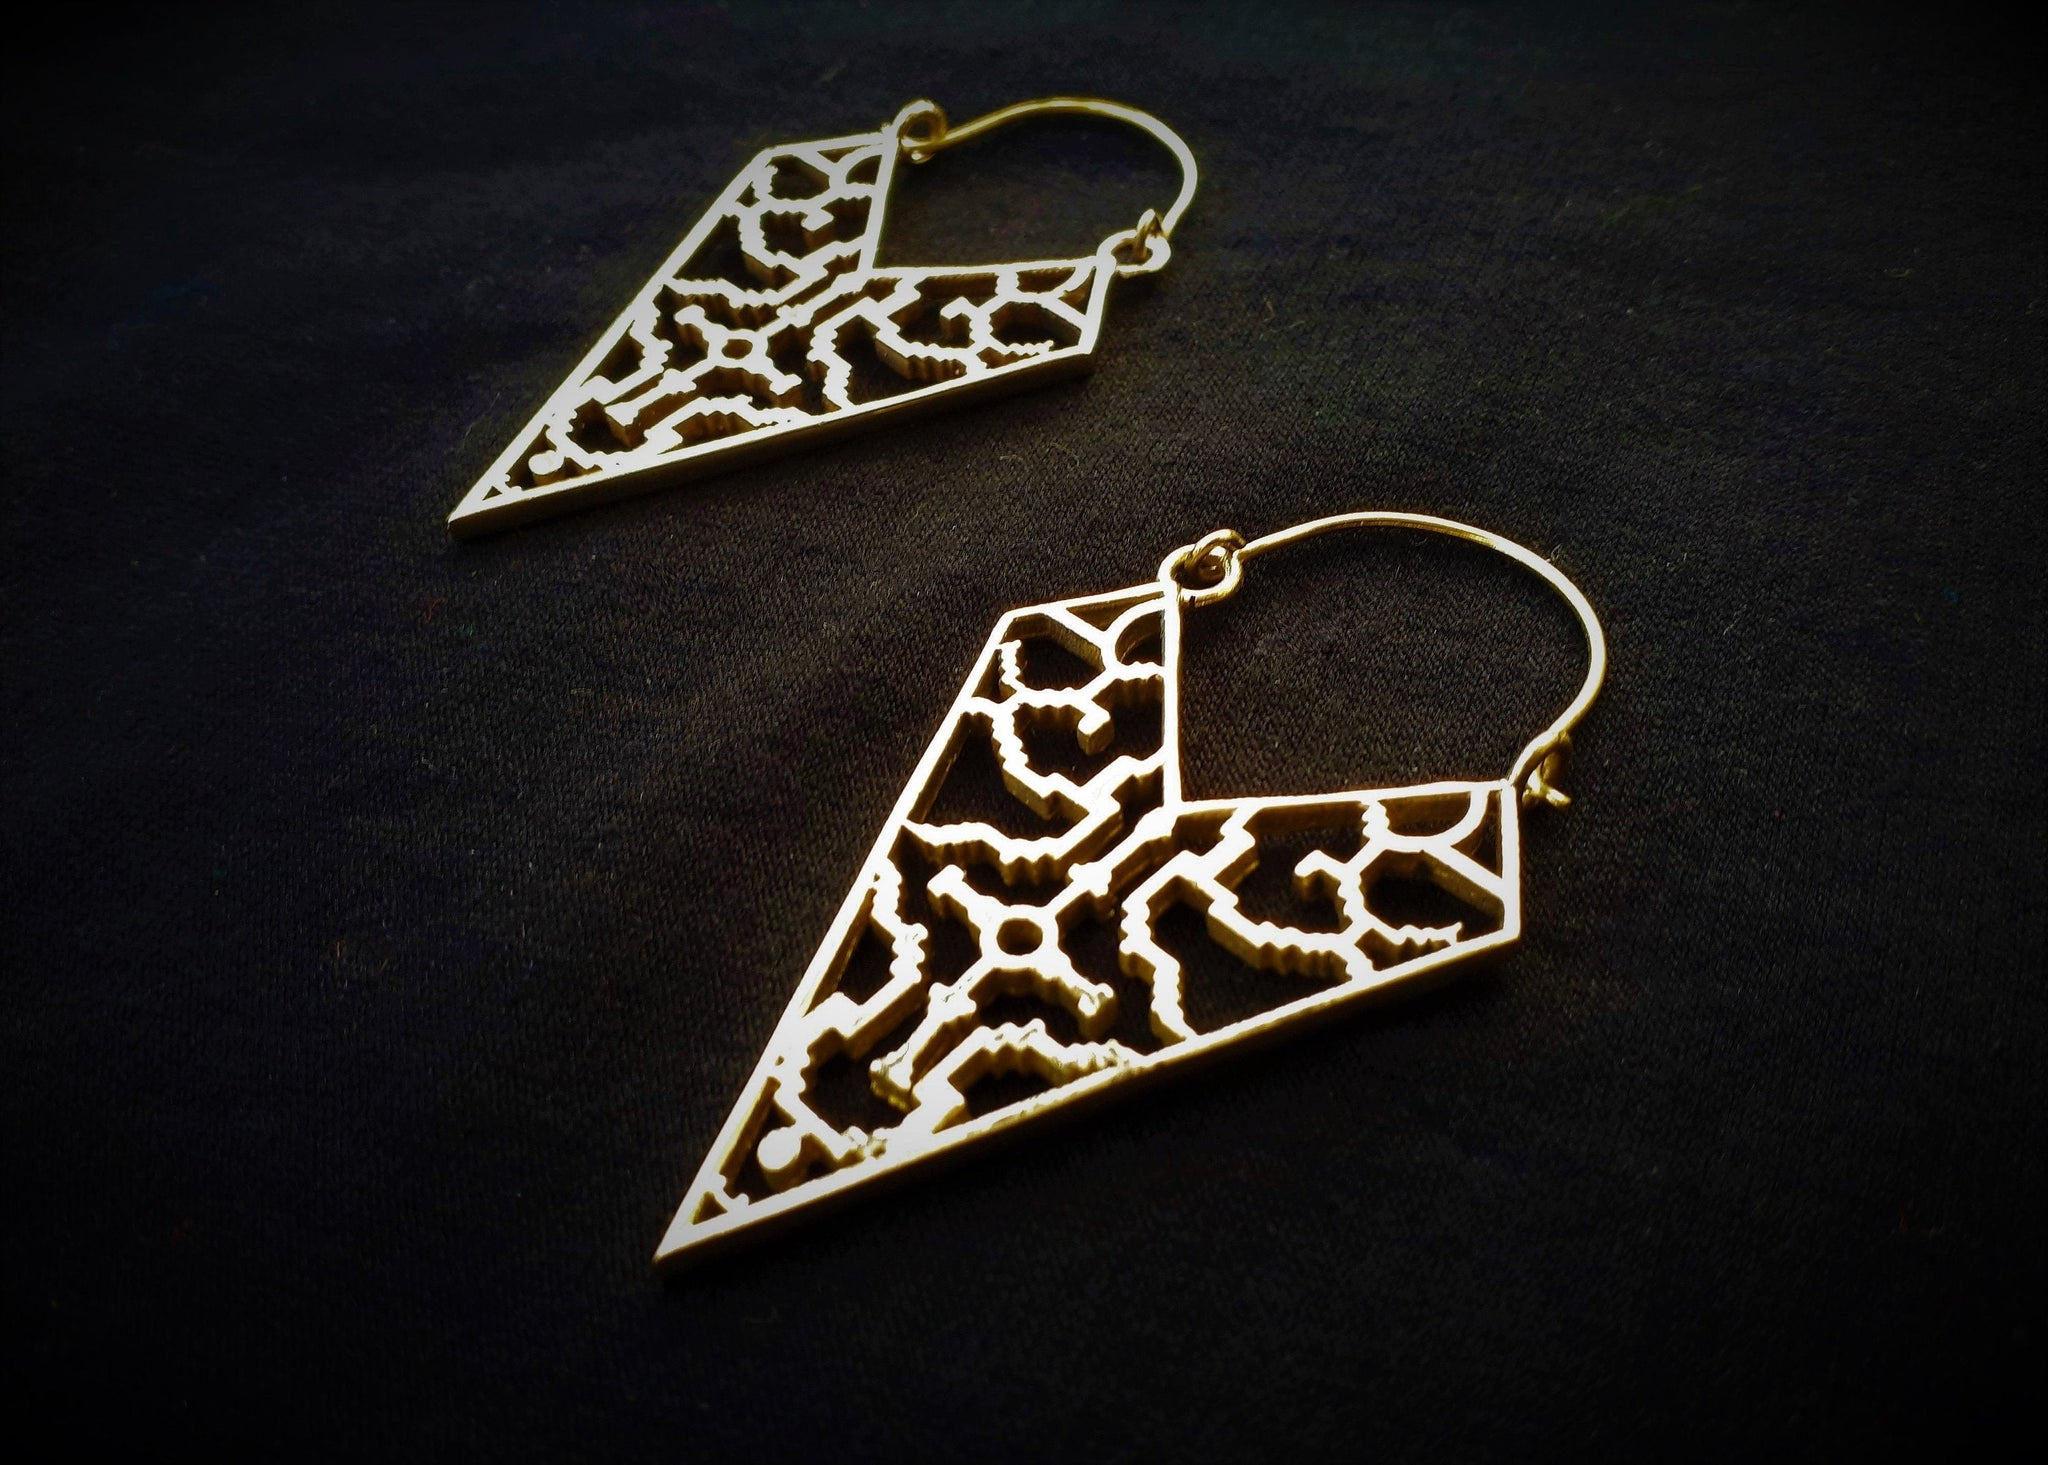 SHIPIBO Earrings -  Ayahuasca Earrings, Tribal Earrings, Brass Earrings, Gypsy Earrings, Sacred Geometry Earrings, Tribal Jewelry, Psy